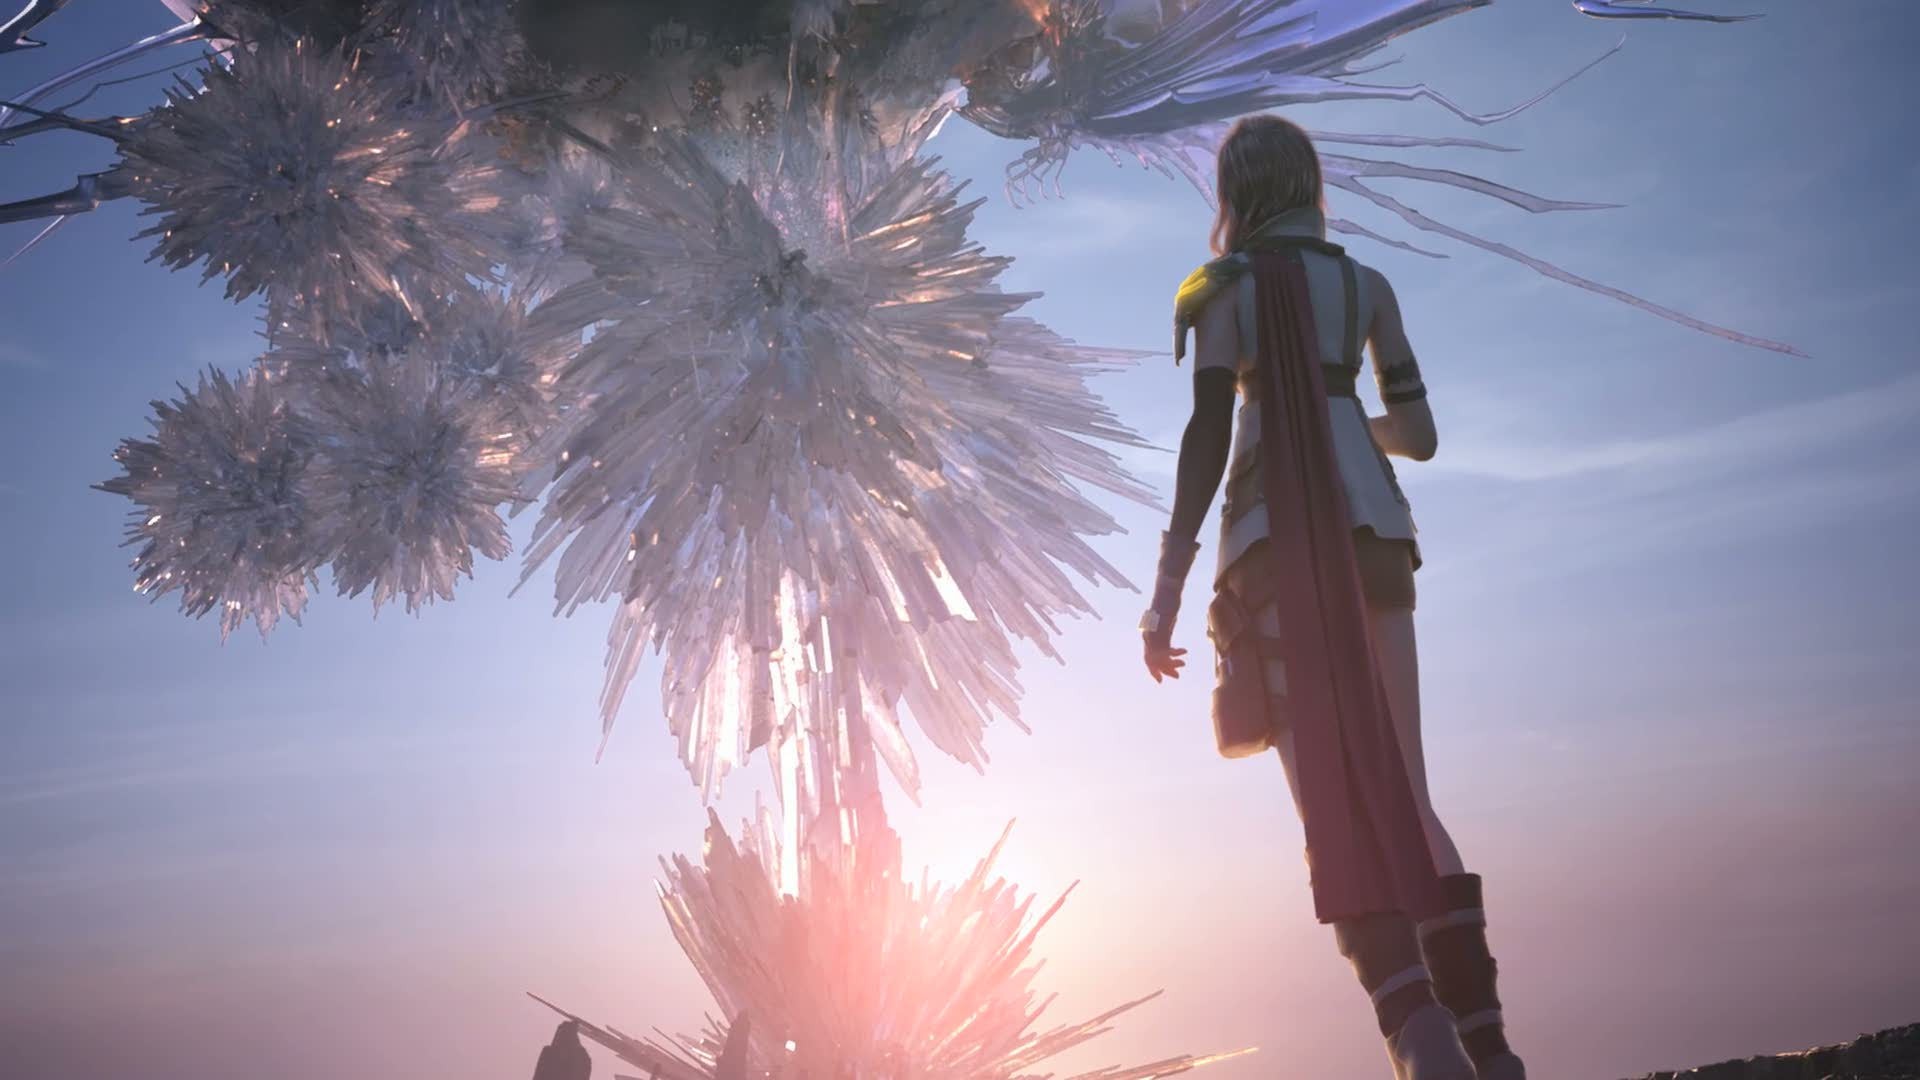 final fantasy xiii wallpapers 1080p wallpaper cave